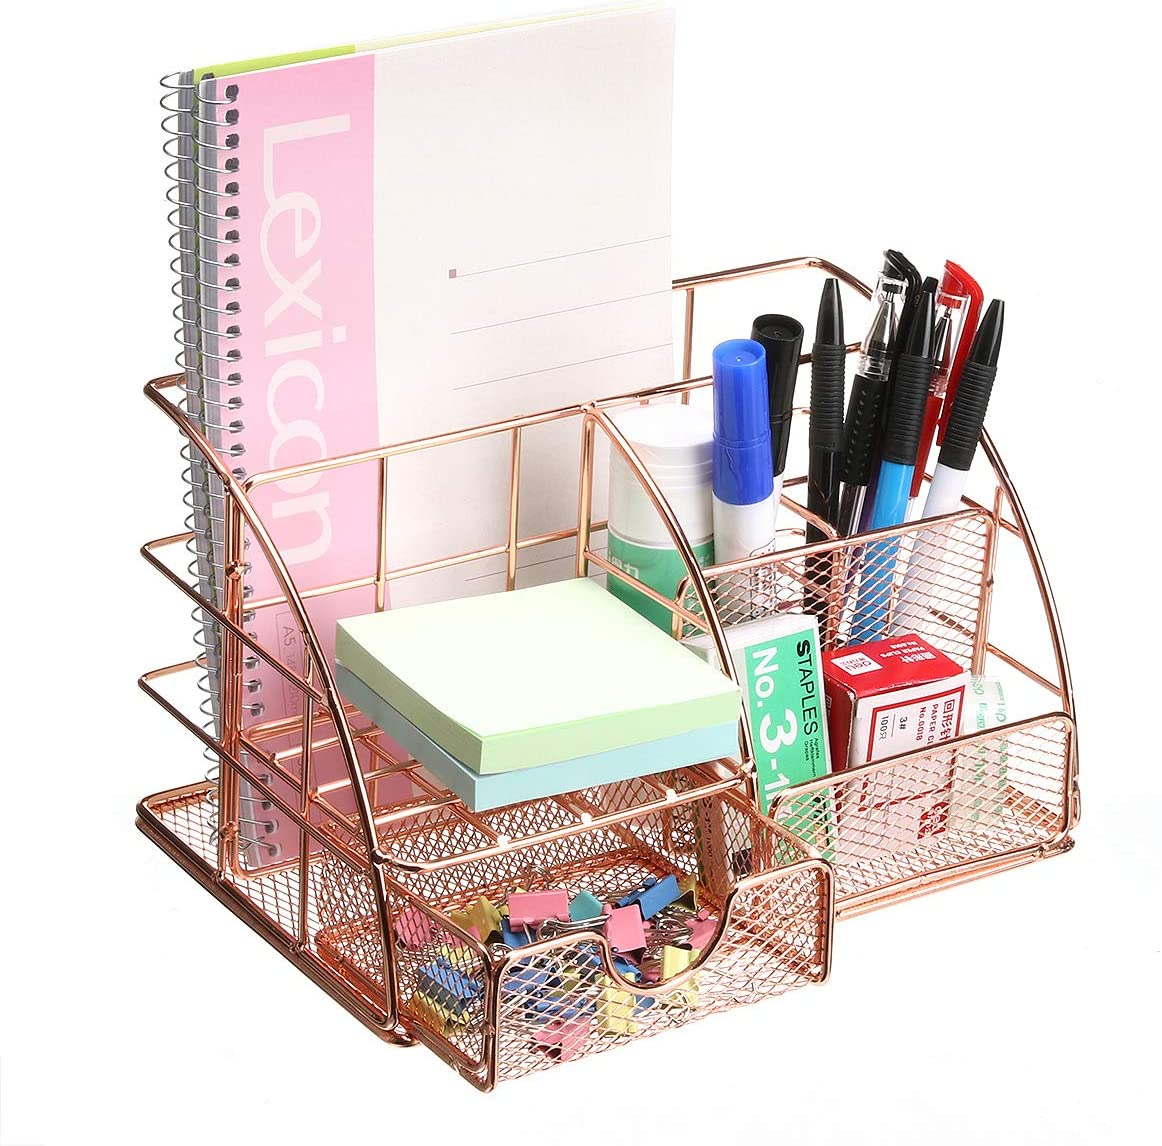 Comfook Rose Gold Desk Organizer for Women,Desk Organizers and Accessories,Mesh Office Supplies Desk Organizer Desk Accessories,6 Compartments + 1 Mini Sliding Drawer